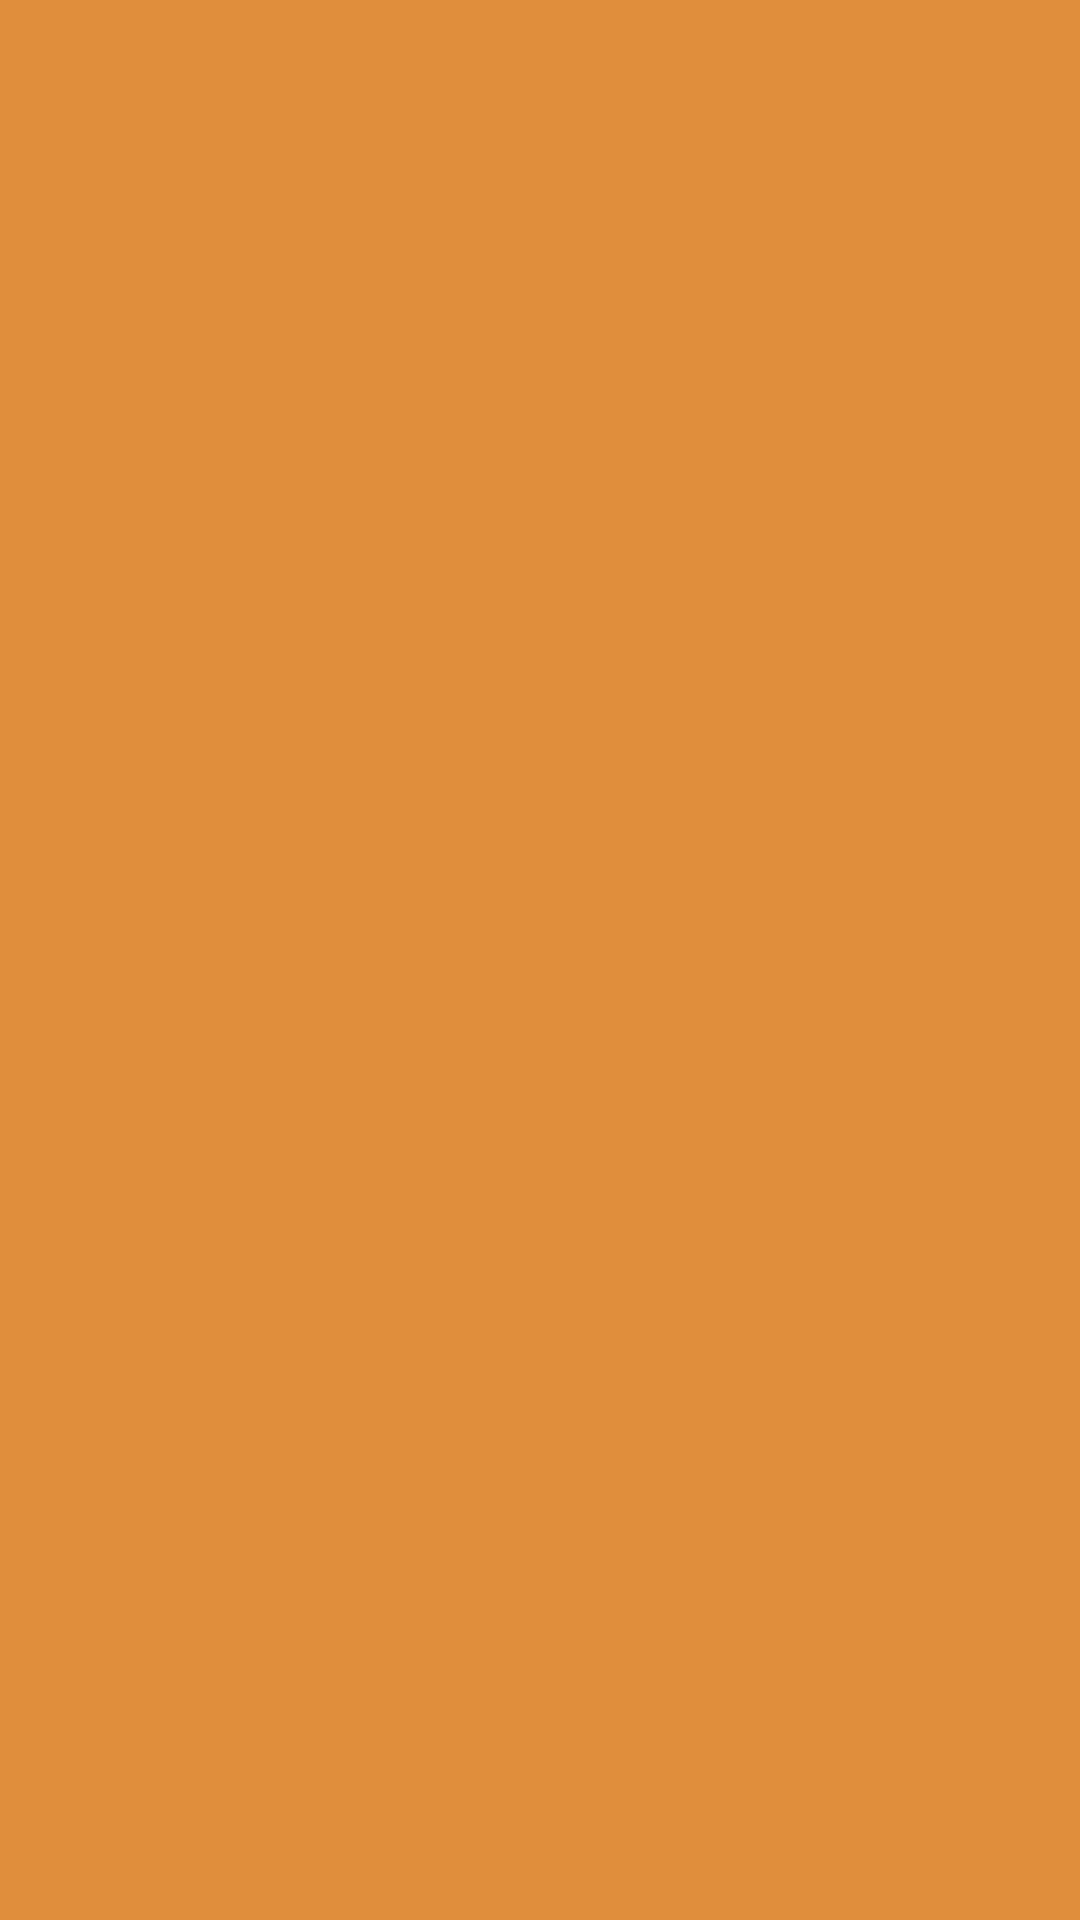 1080x1920 Tigers Eye Solid Color Background